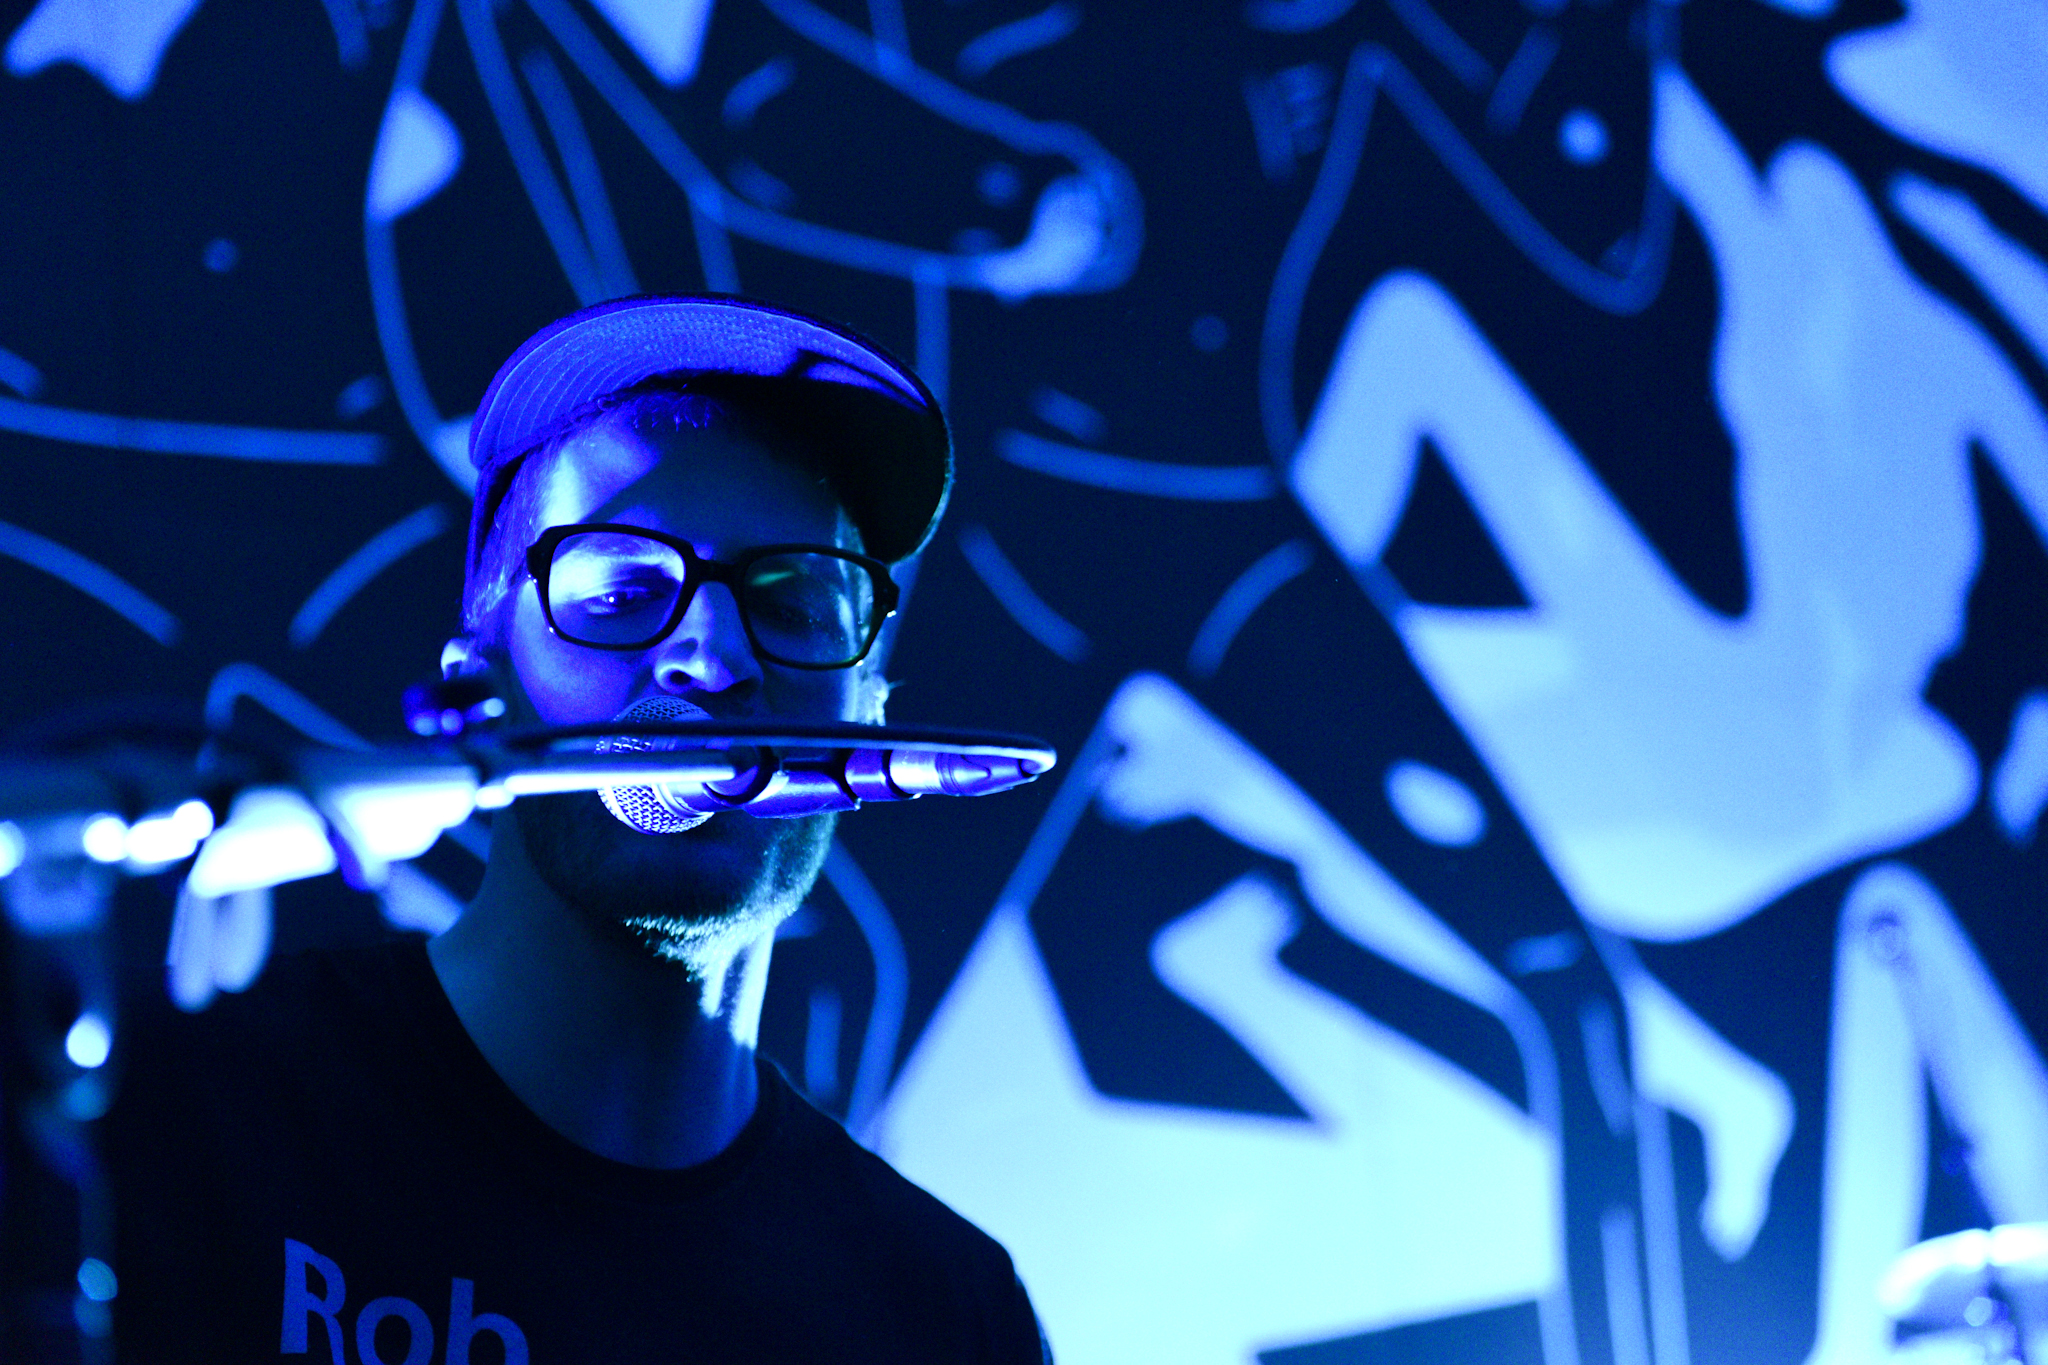 03162018_bruce_mca portugal the man cleon peterson_0035.jpg